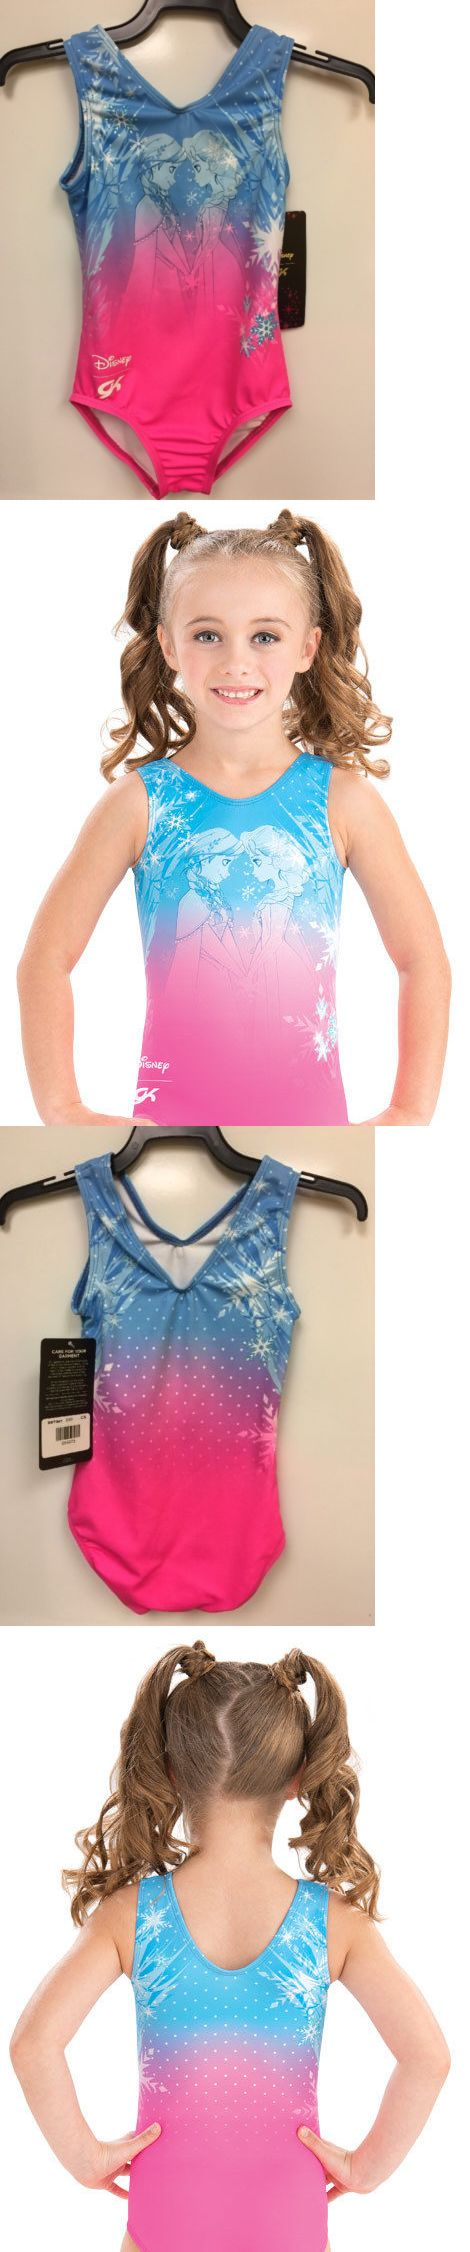 Youth 159170: New Gk Disney Anna And Elsa Snowflake Leotard. Size Child Small Cs. -> BUY IT NOW ONLY: $39 on eBay!